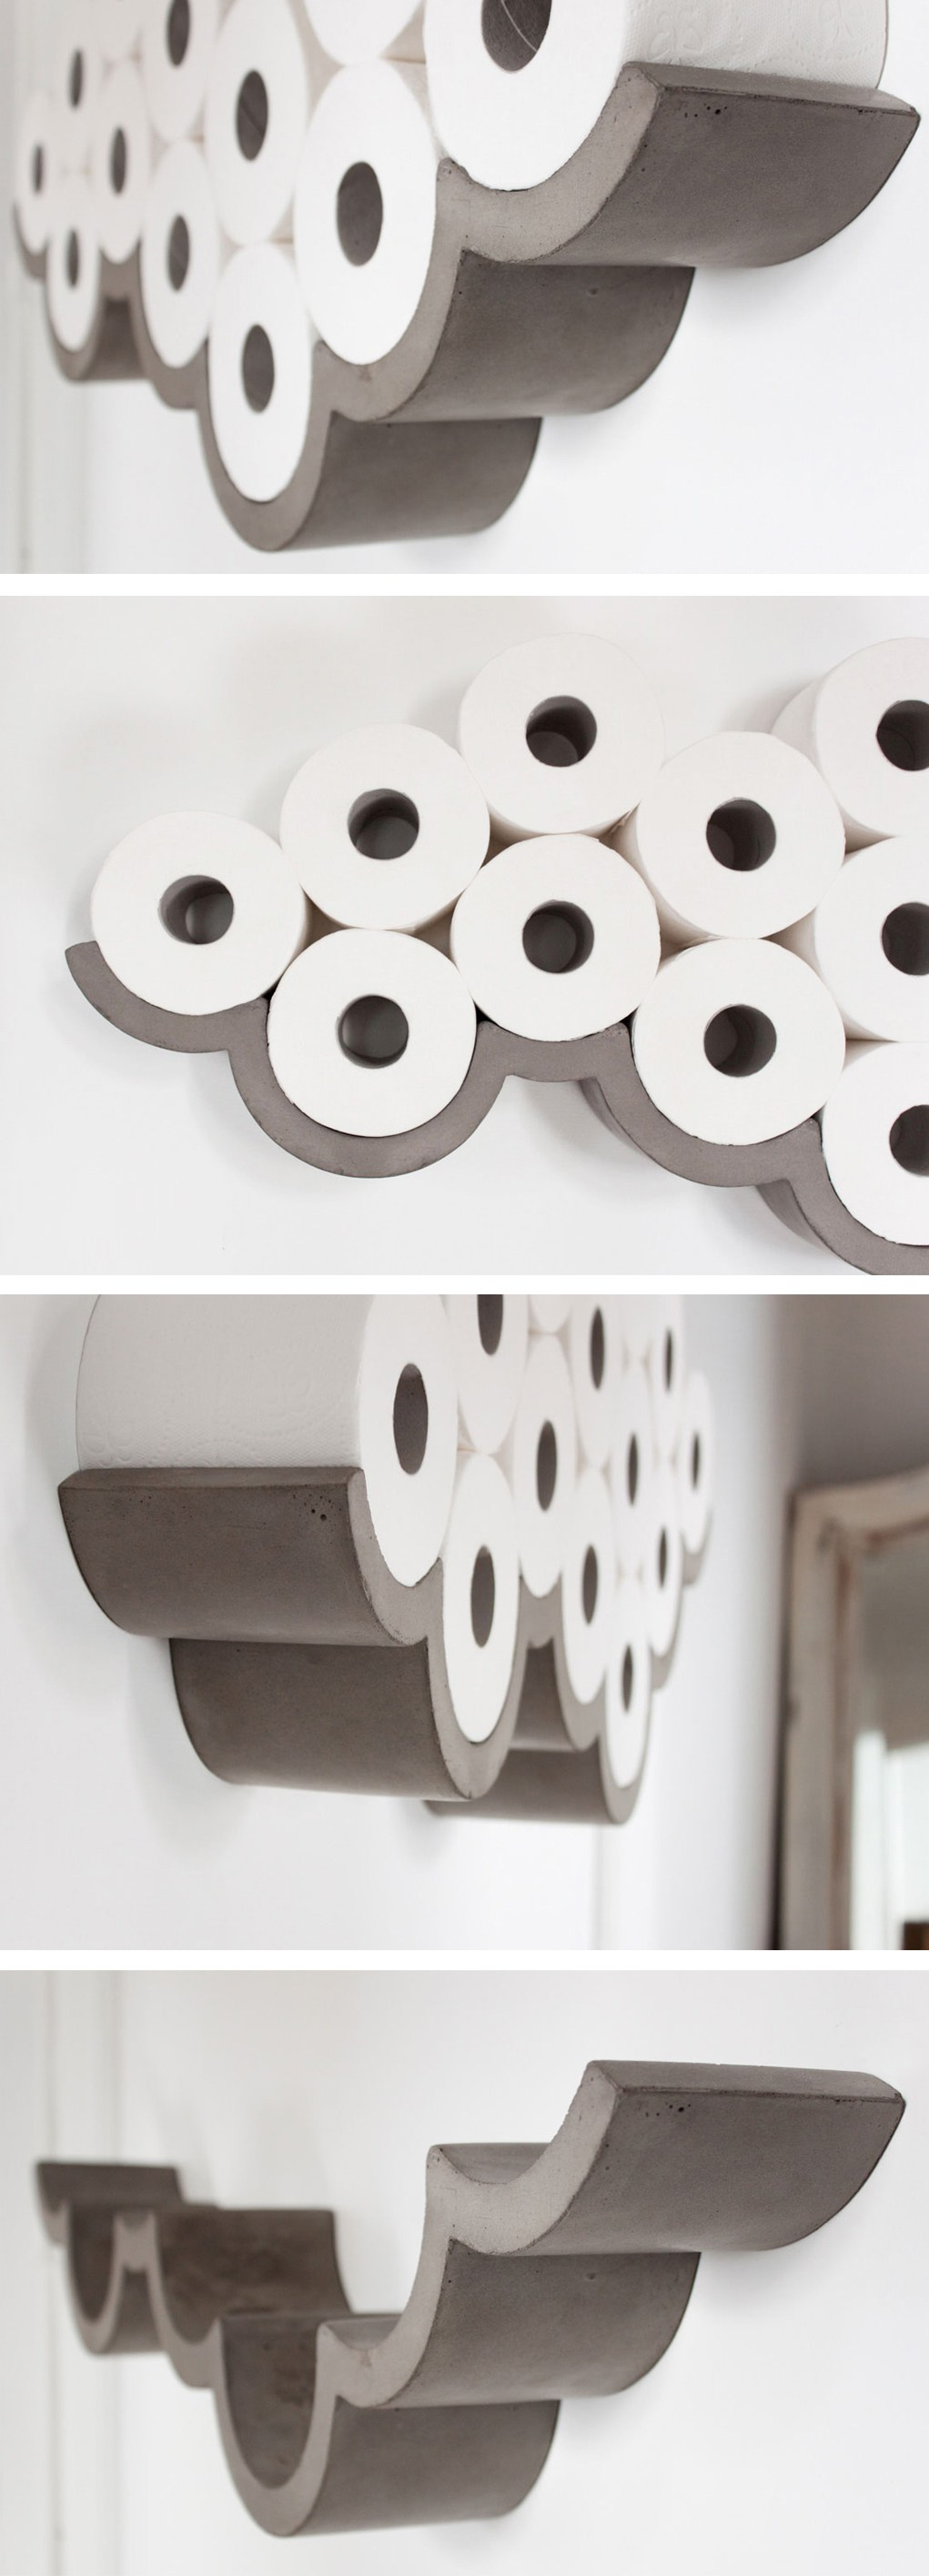 Excellent Diy Toilet Paper Holder Decorating Ideas